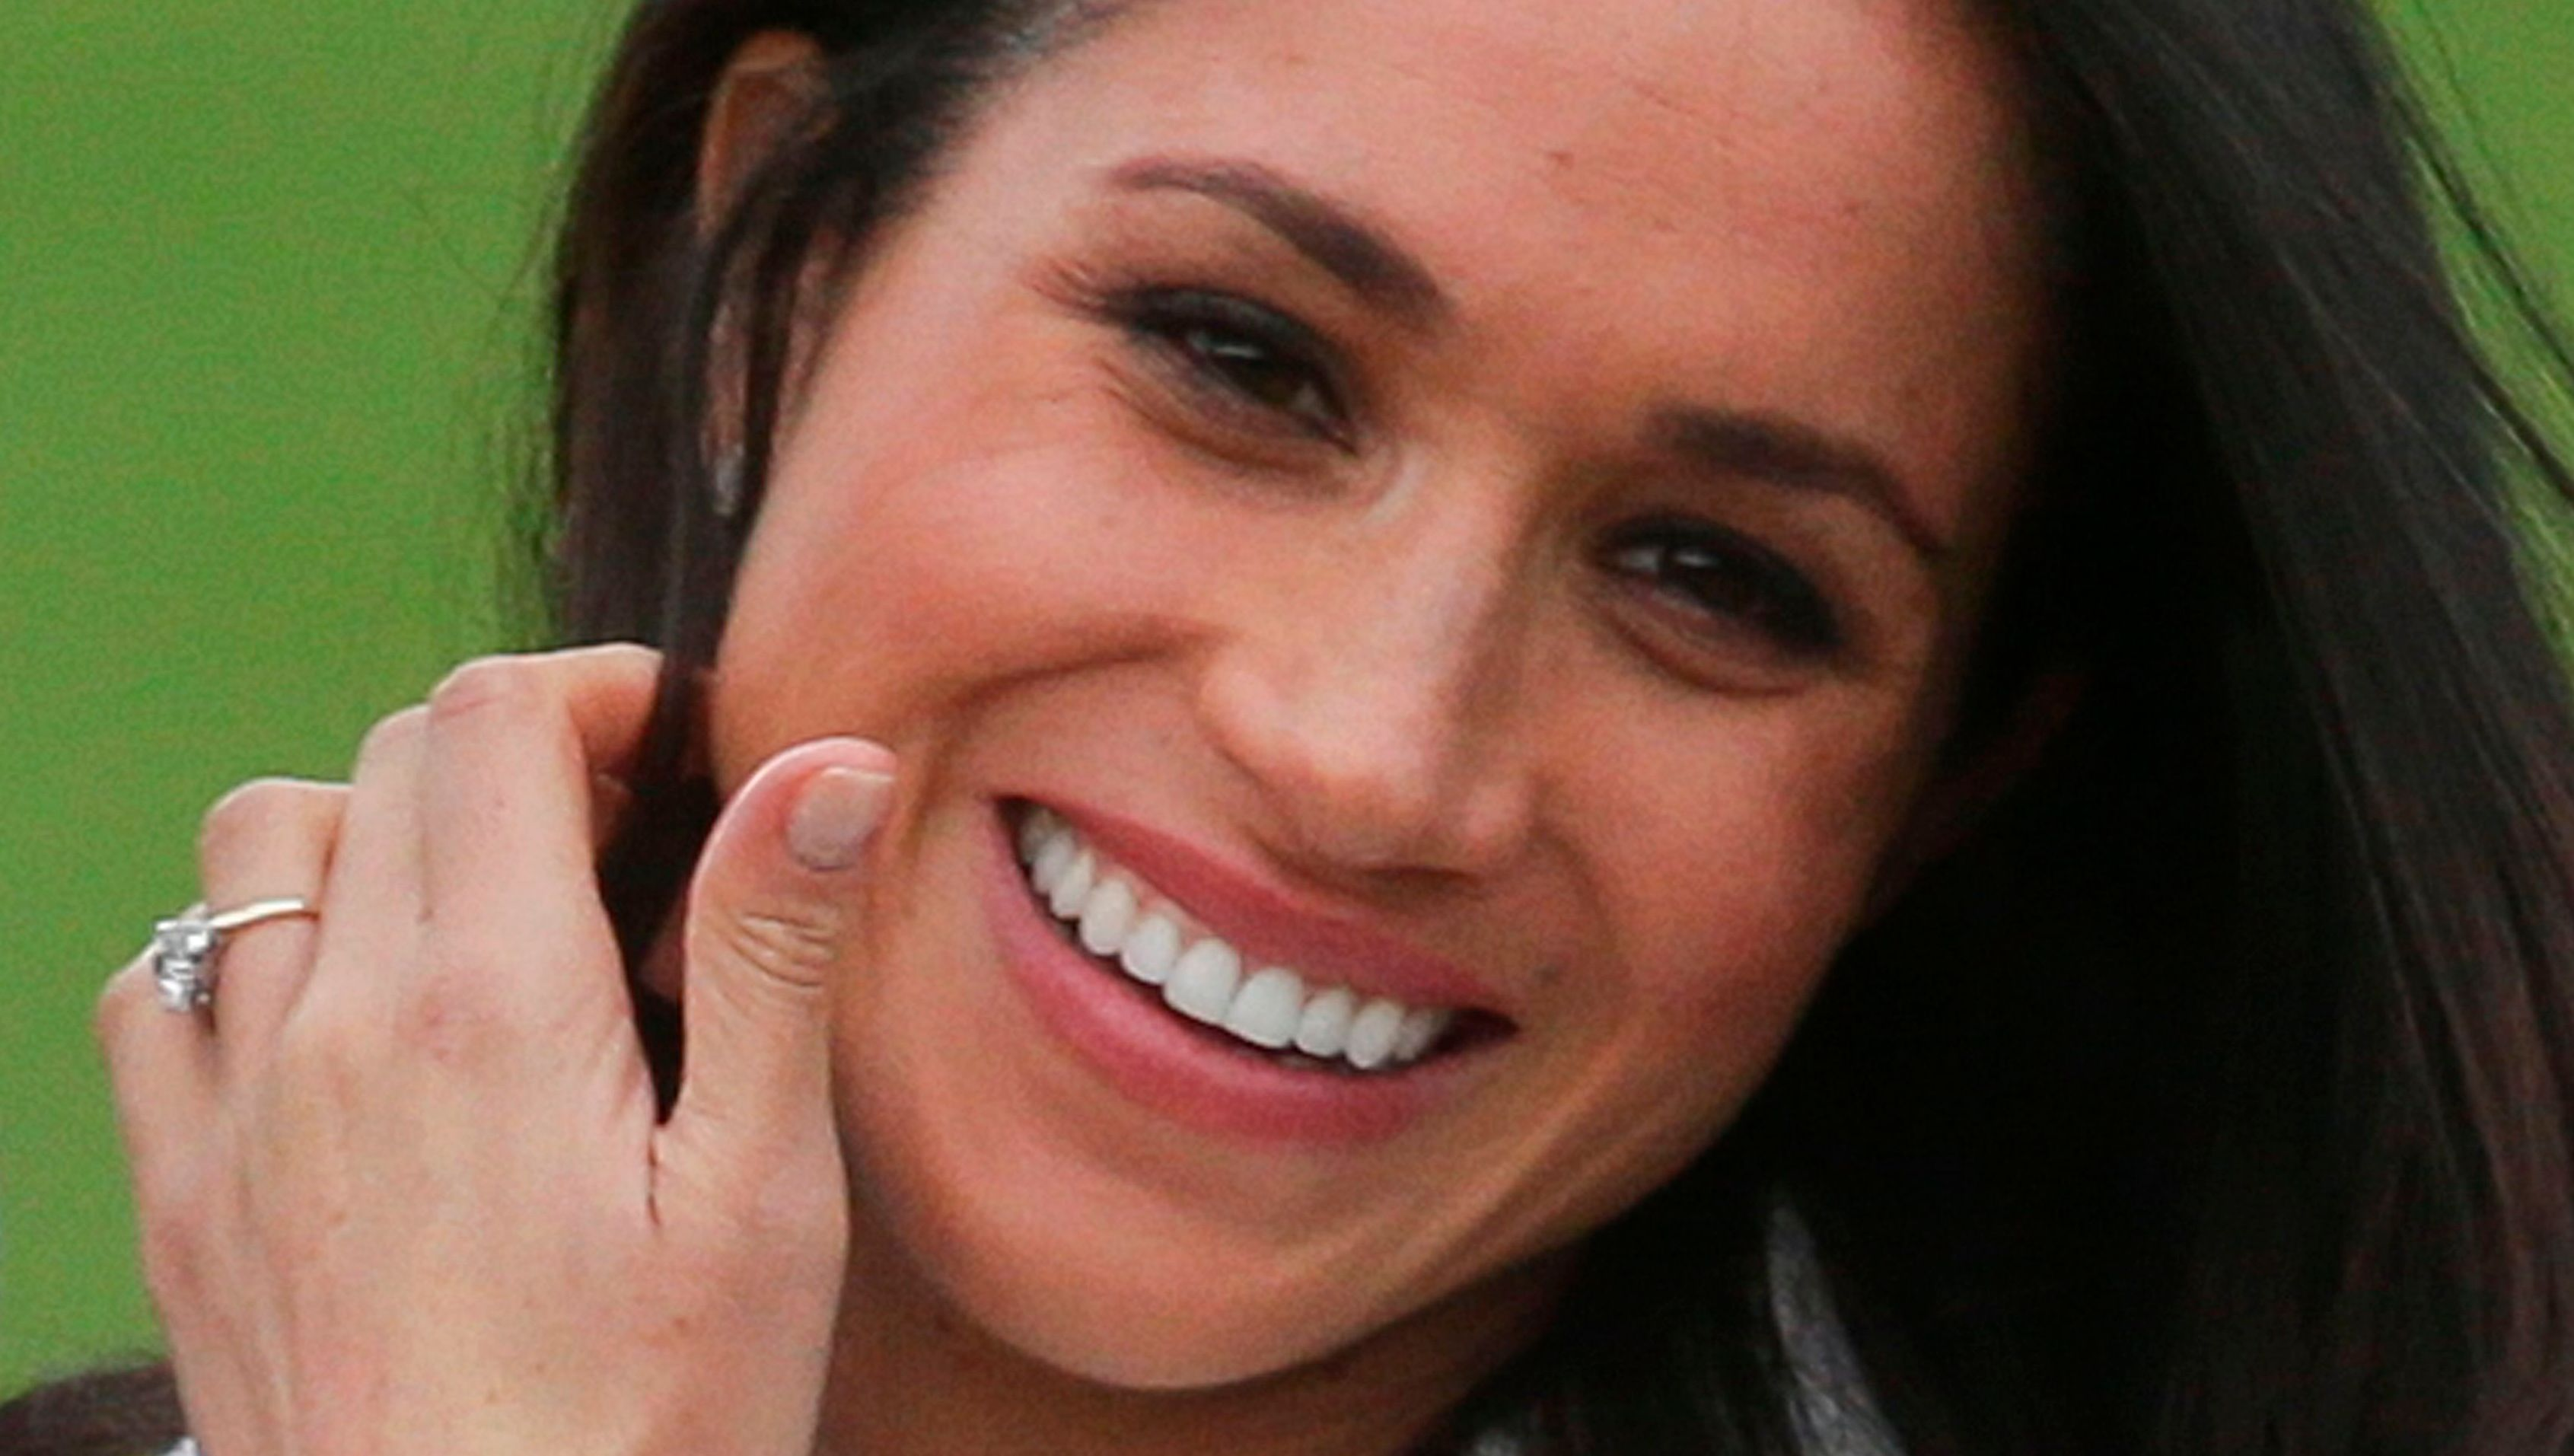 US actress Meghan Markle shows off her engagement ring she poses with her fiancée Britain's Prince Harry in the Sunken Garden at Kensington Palace in west London on November 27, 2017, following the announcement of their engagement. - Britain's Prince Harry will marry his US actress girlfriend Meghan Markle early next year after the couple became engaged earlier this month, Clarence House announced on Monday. (Photo by Daniel LEAL-OLIVAS / AFP) (Photo credit should read DANIEL LEAL-OLIVAS/AFP/Getty Images)